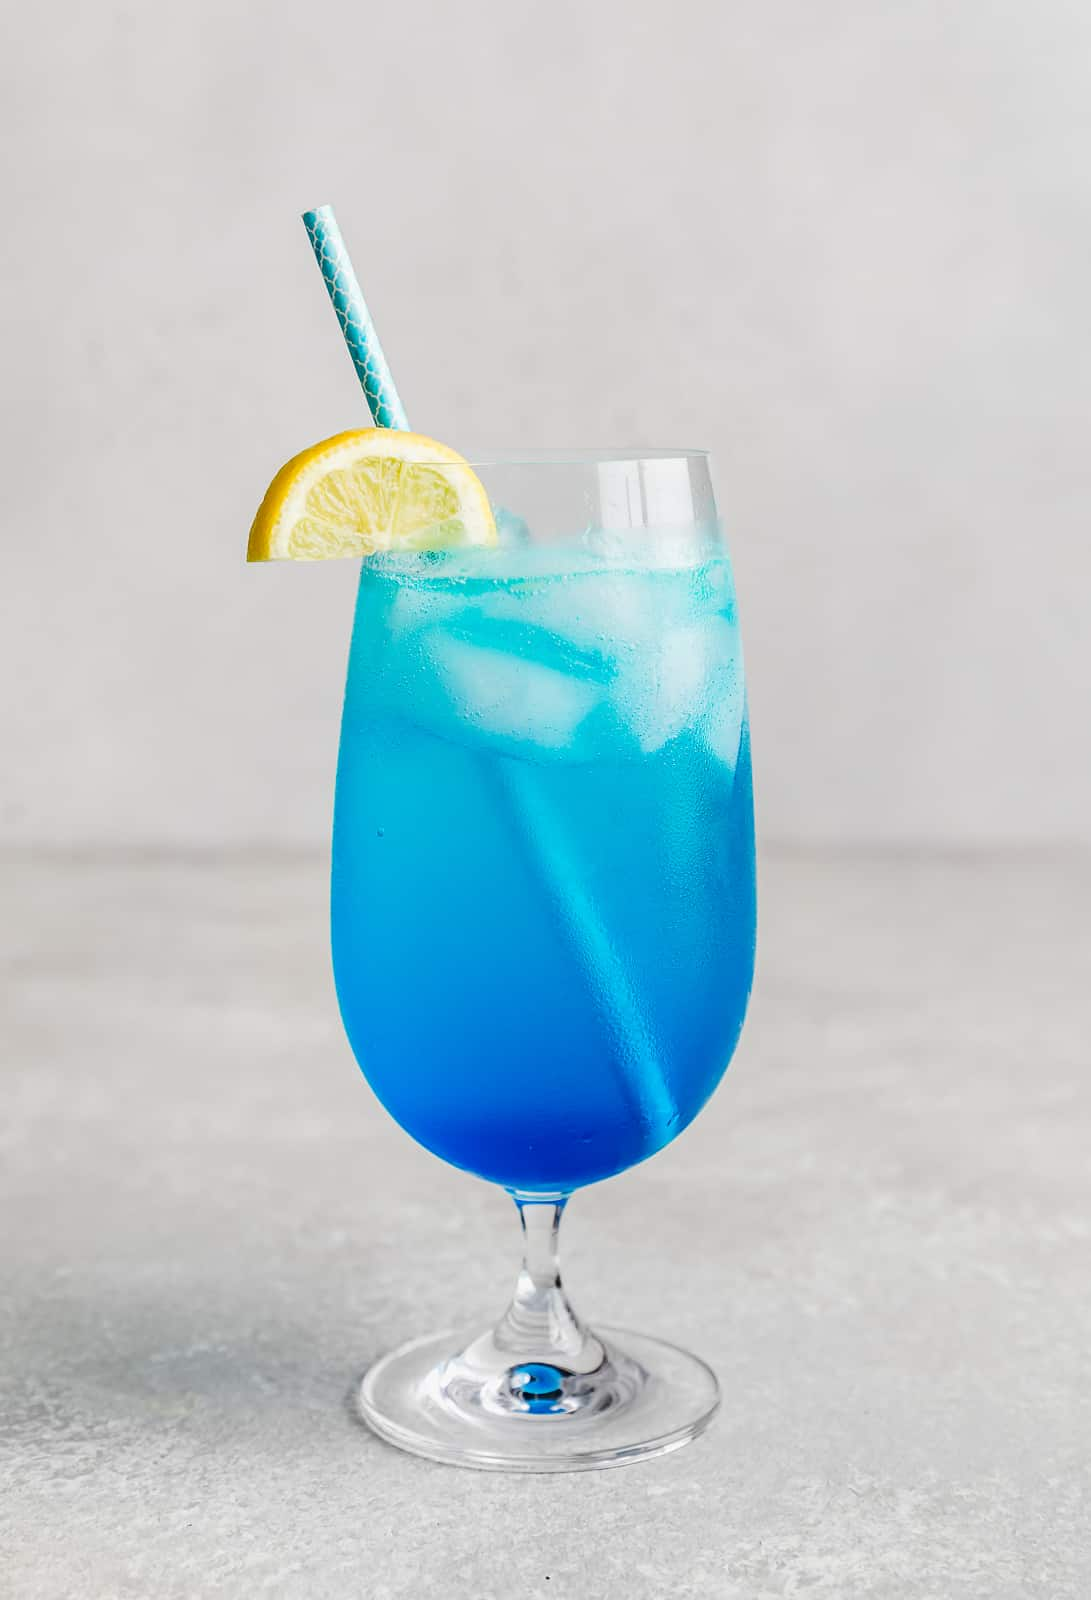 A Blue Lagoon Mocktail against a white background.